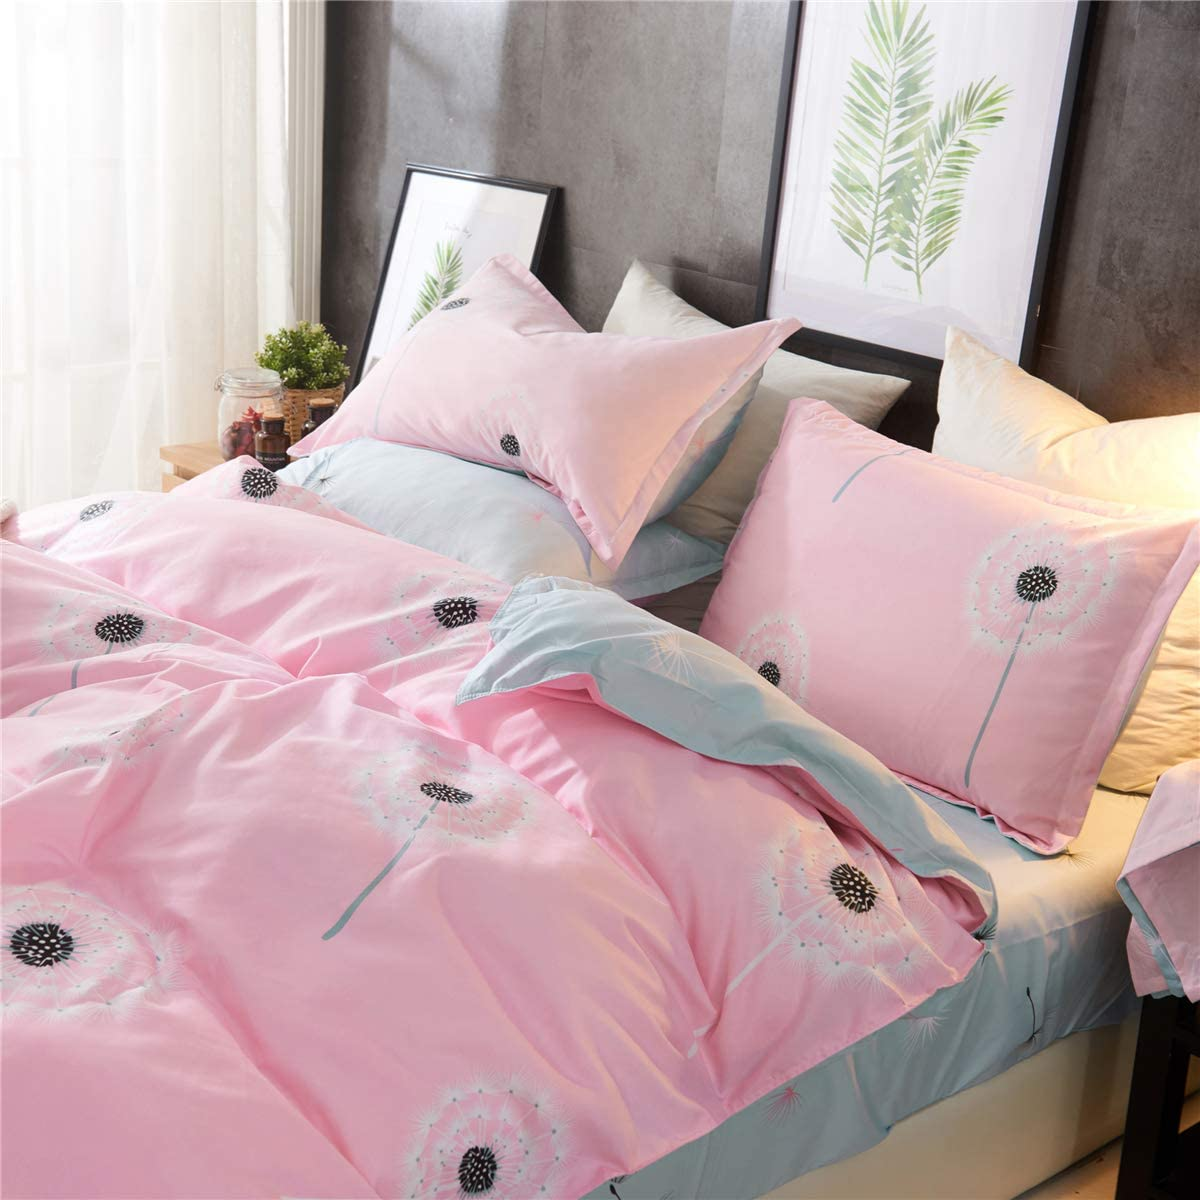 Strawberry Duvet Cover Set Full//Queen Size Strawberry Printed Bedding Duvet Cover for Kids Teens Girls Quilt Cover Fruit Theme Comforter Cover Cute Warm Sweet Duvet Cover Soft Breathable Bed Cover